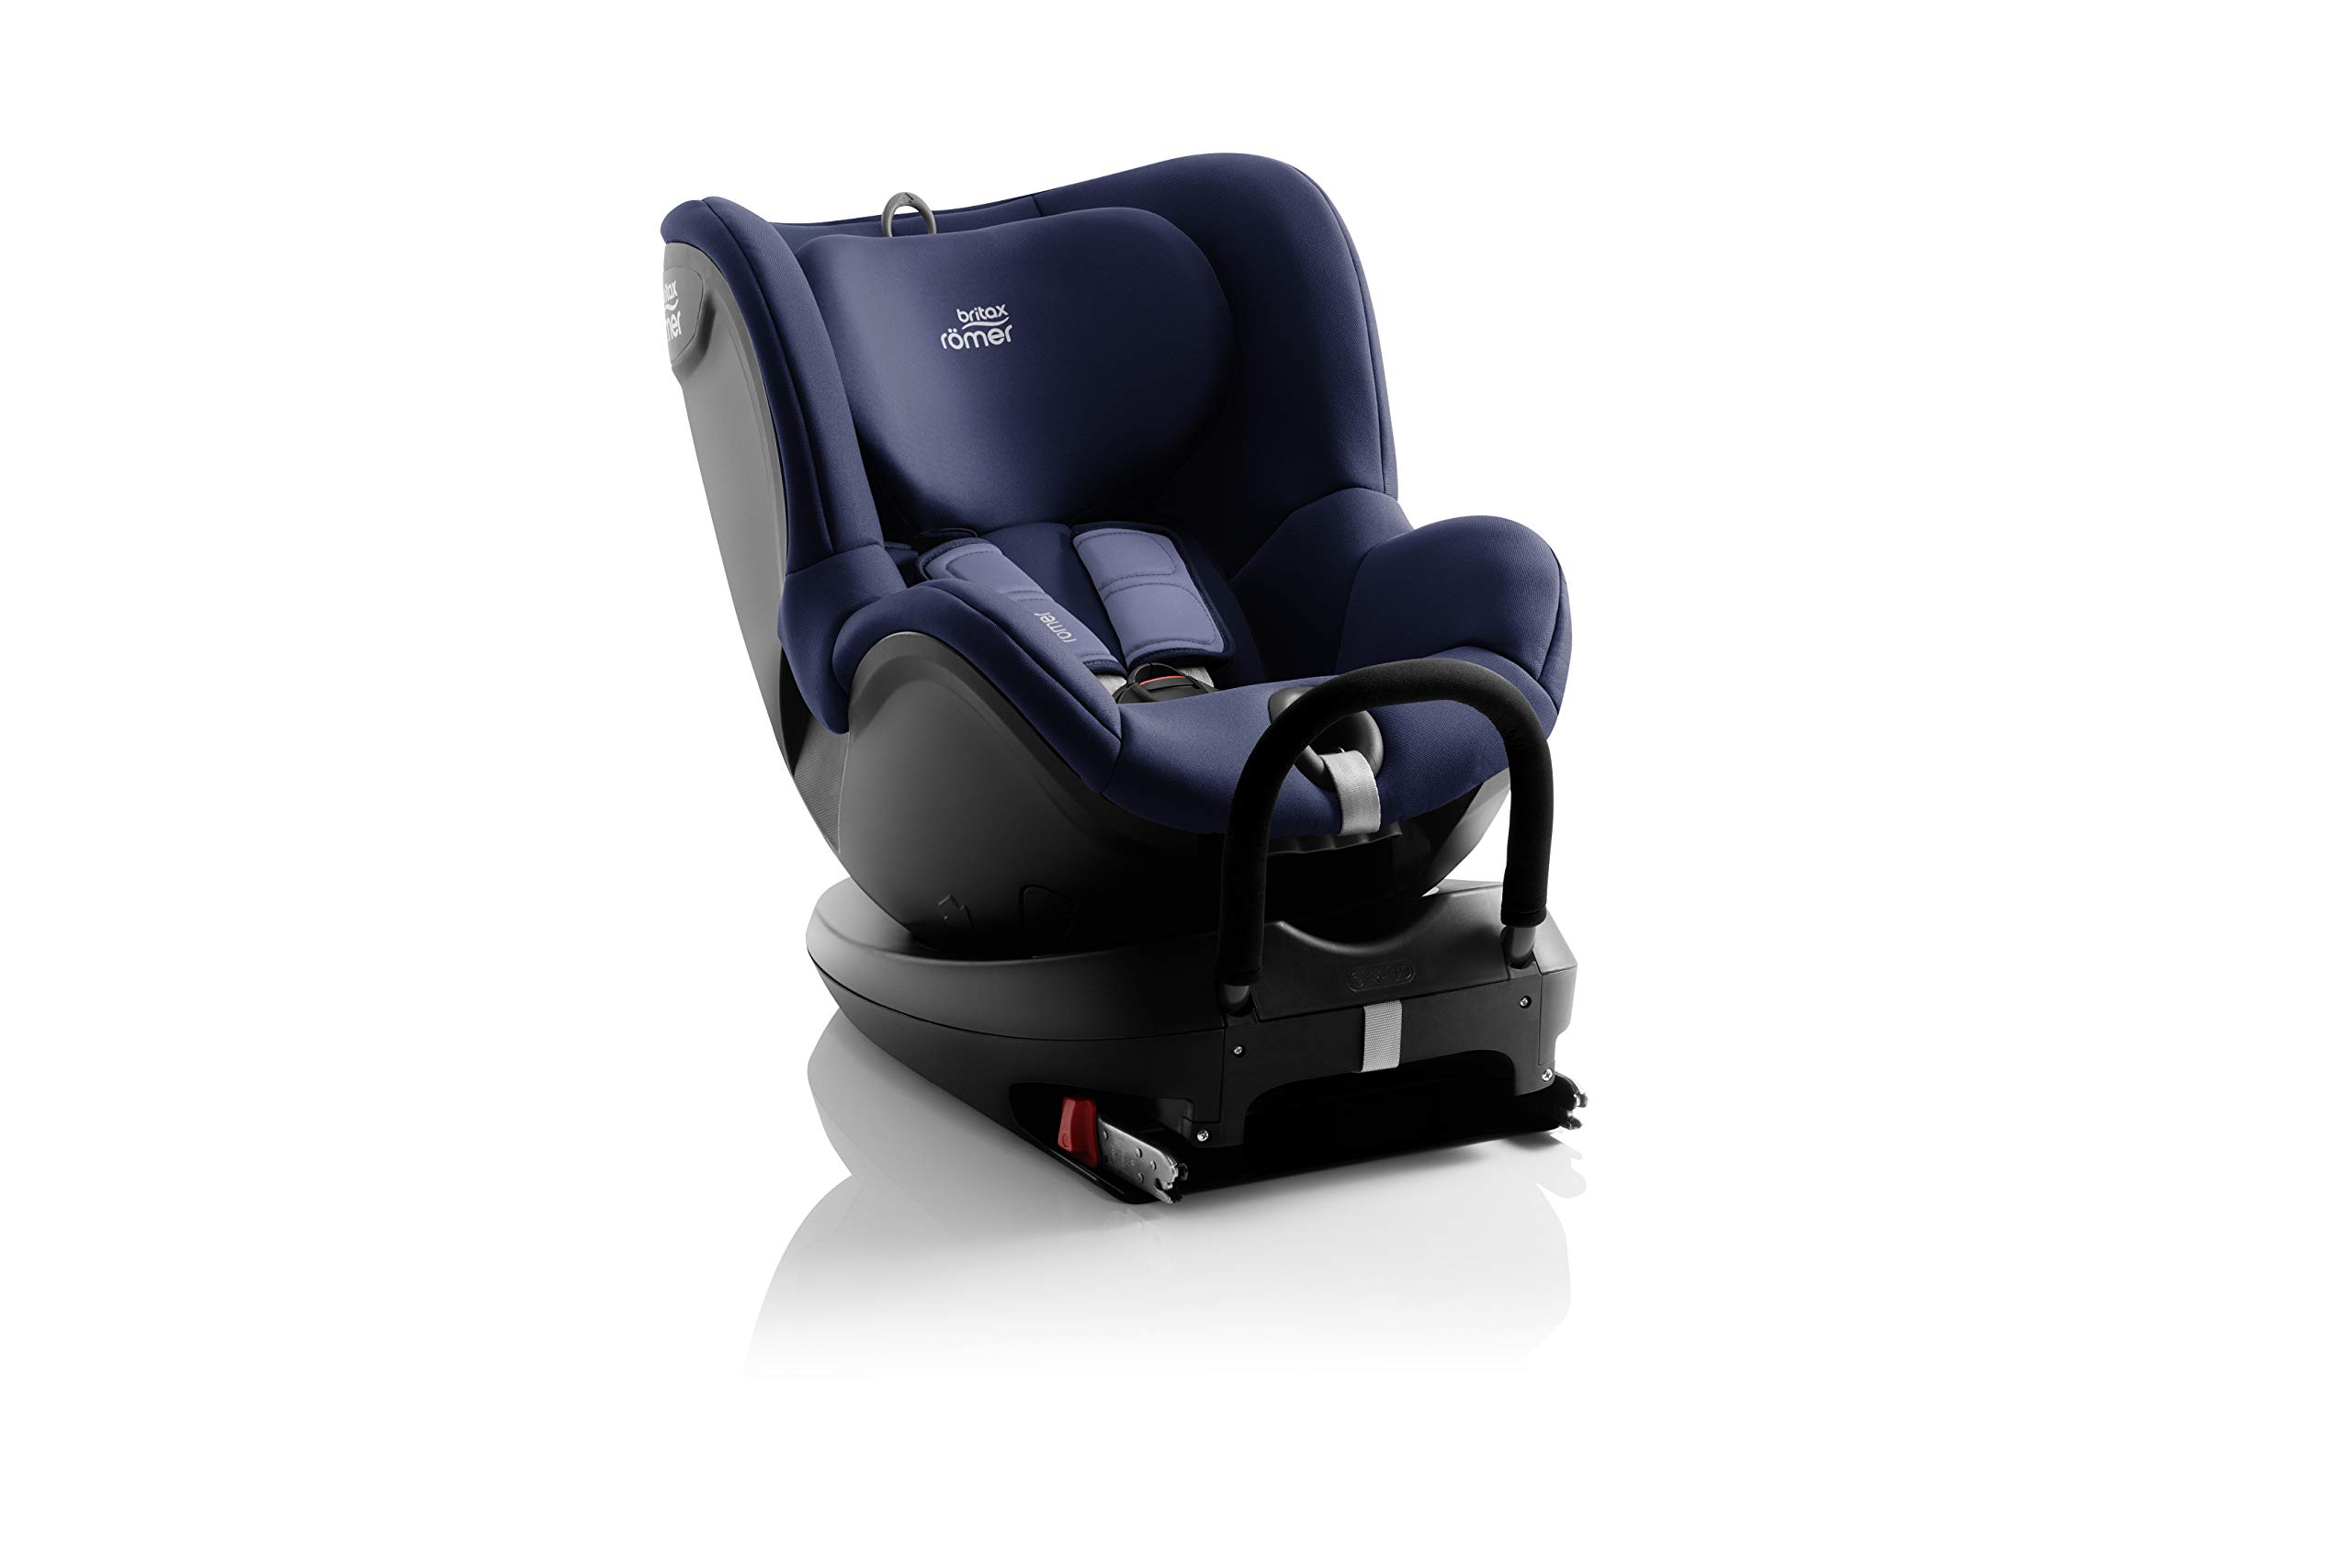 Britax Römer car seat birth DUALFIX 2 R car seat swivel group 0+/1, Moonlight Blue, 18 kg Britax Römer Intuitive 360 Degree rotation for rearward and forward facing usage Easy entry with 90 Degree rotation to the open door for easy placement of the child Extended rearward facing travel with more leg space thanks to shorter rebound bar 3